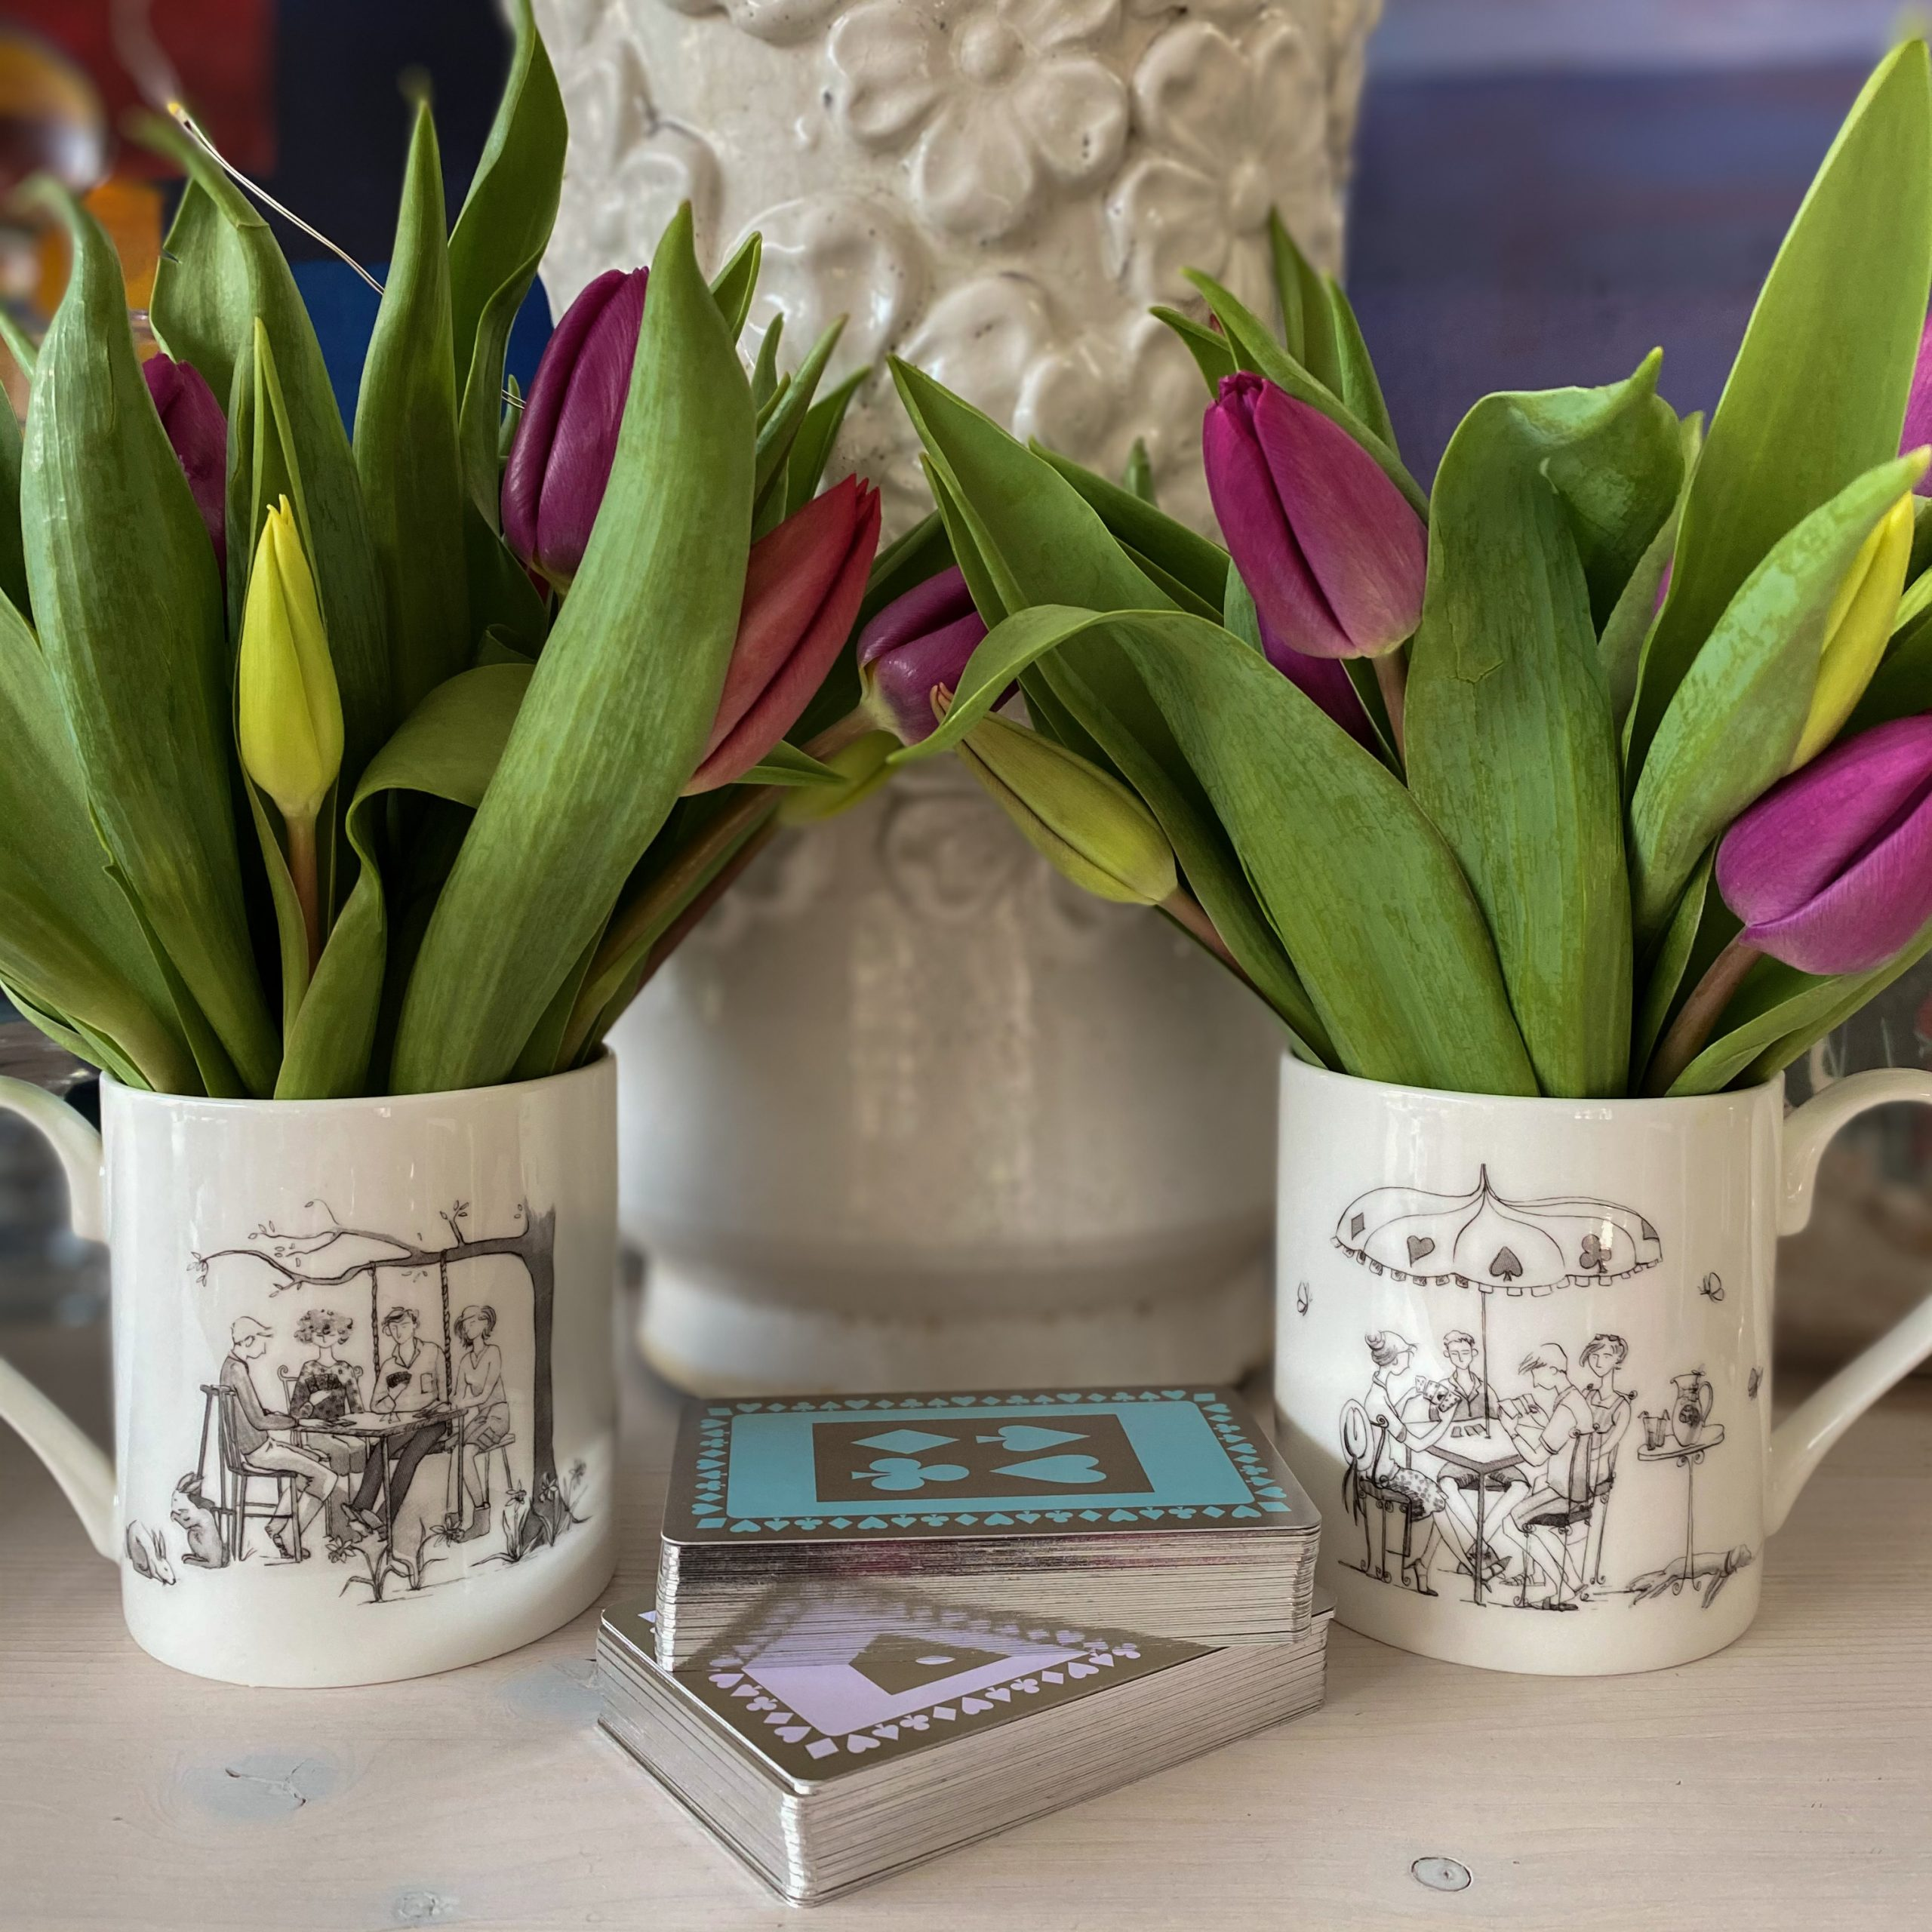 Bridge in the Box profile picture with tulips and mug and playing cards